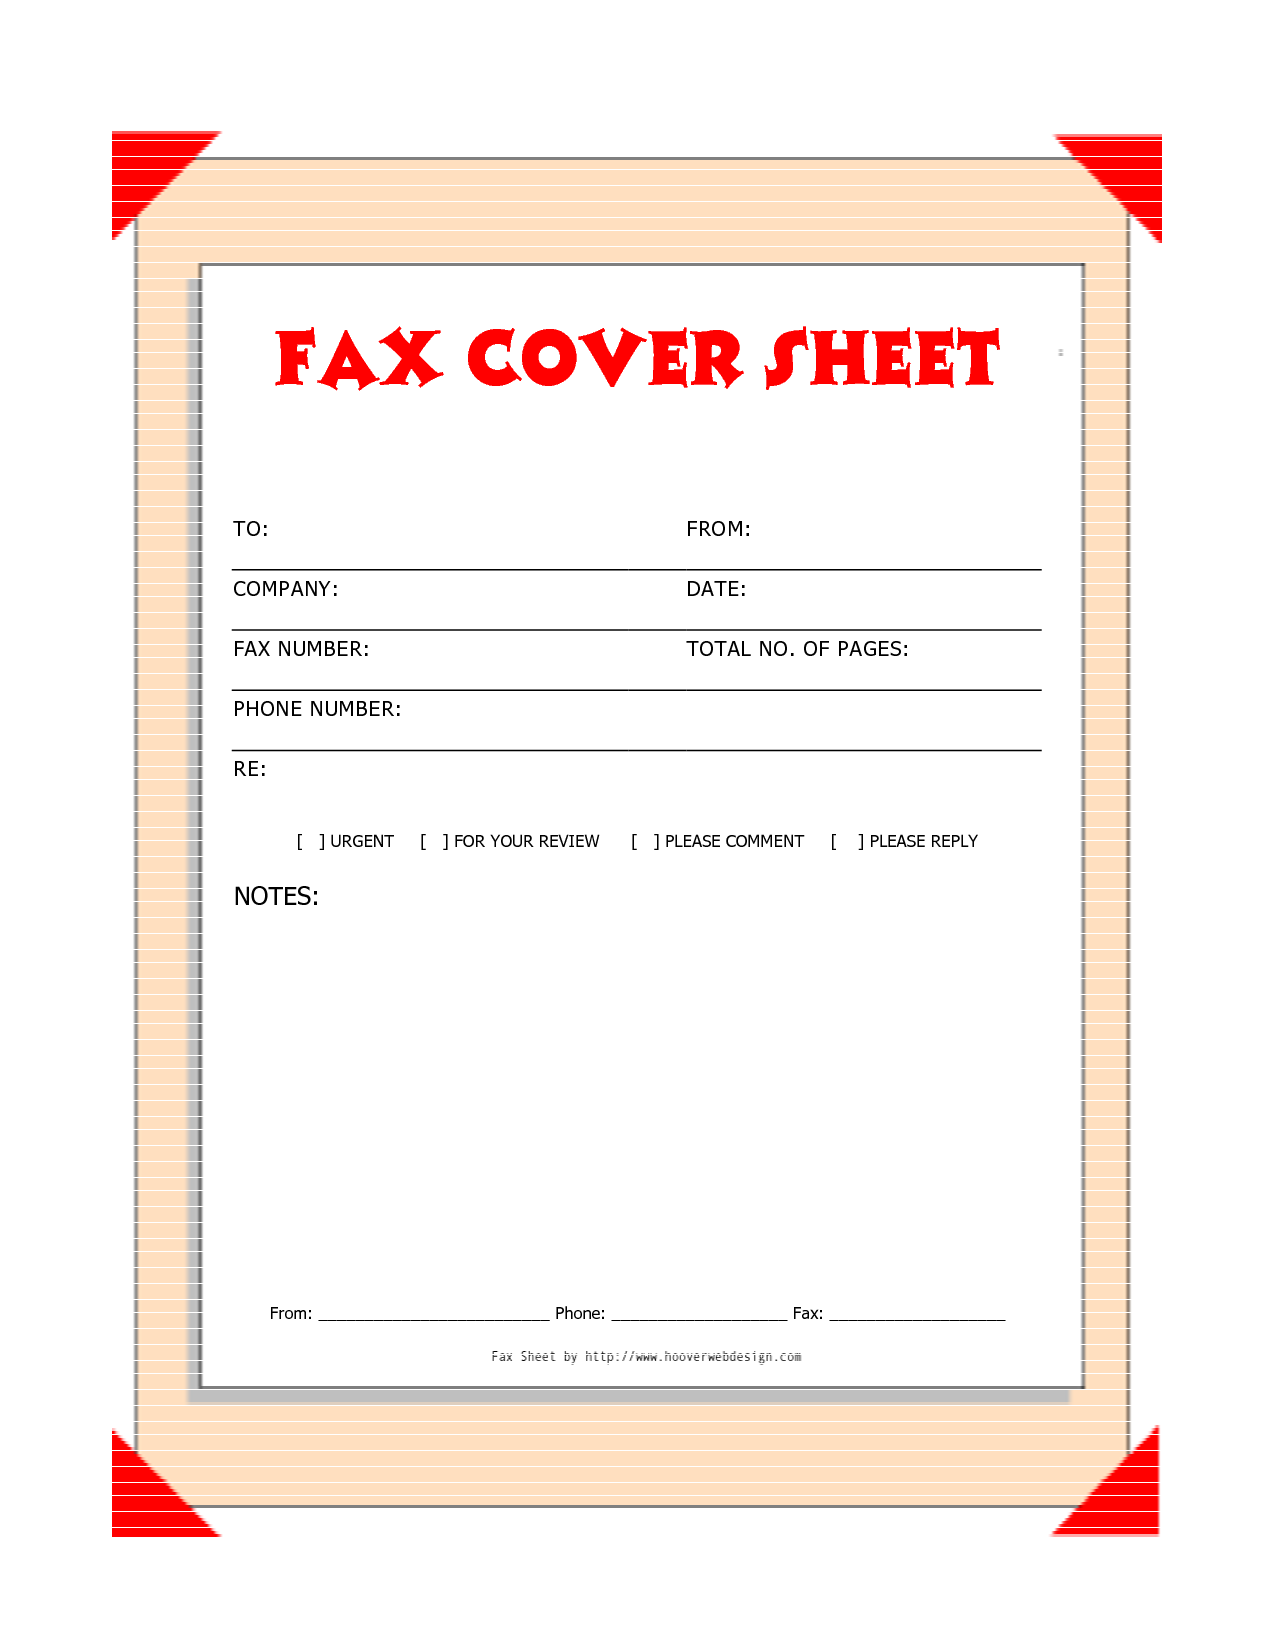 Free downloads fax covers sheets free printable fax cover sheet sample solution architect cover letter resume sample cover letter for job application doc easy resume madrichimfo Gallery